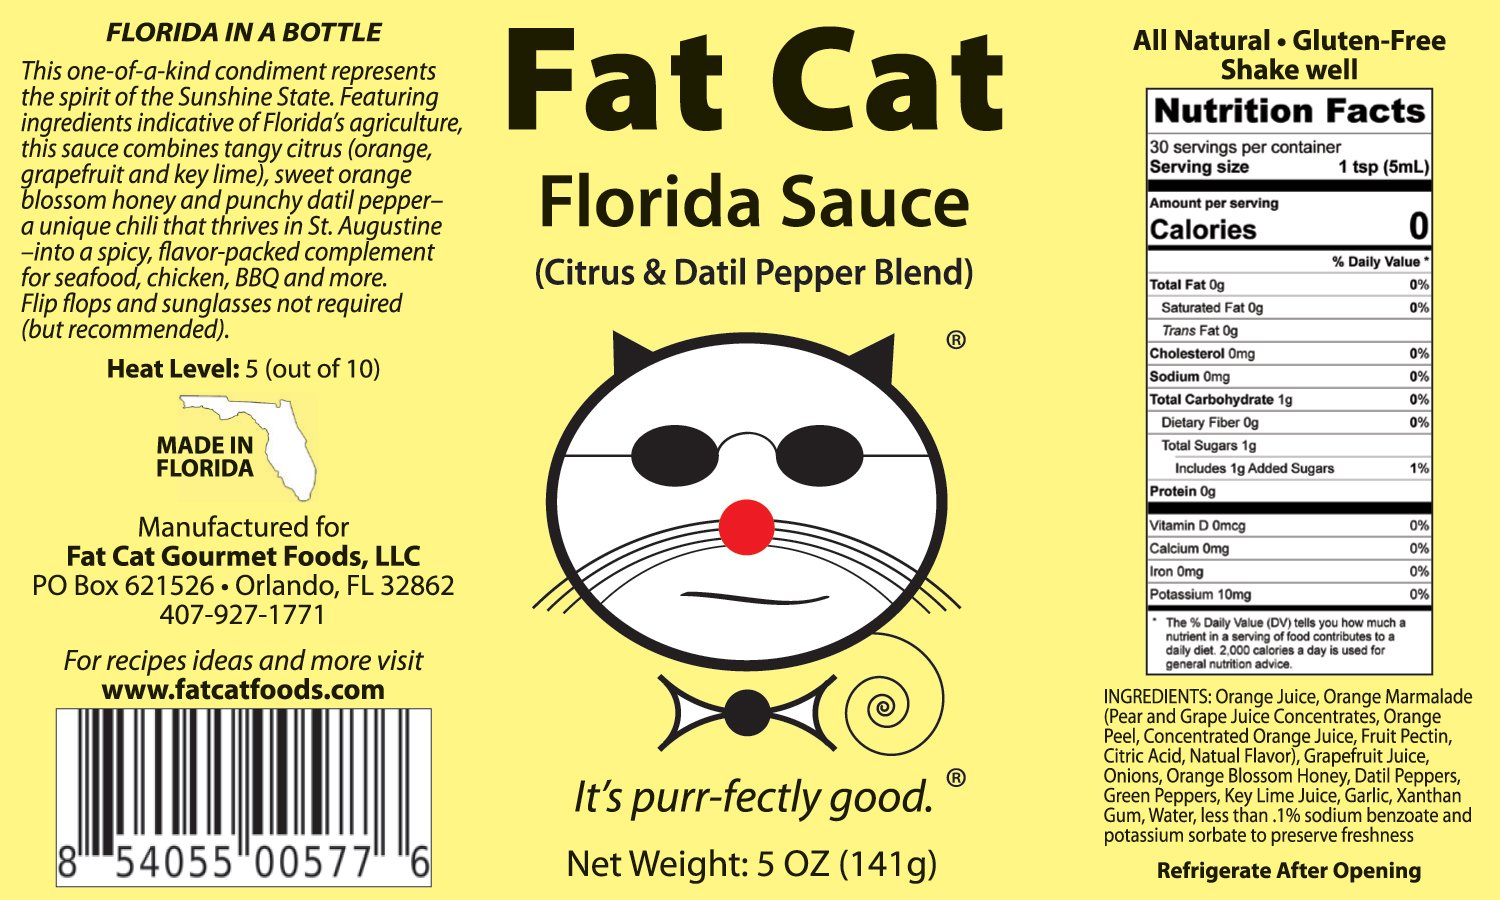 Amazon.com : Fat Cat - Florida Sauce: Citrus and Datil Pepper Blend Hot Sauce sold by Fat Cat Gourmet Foods : Grocery & Gourmet Food